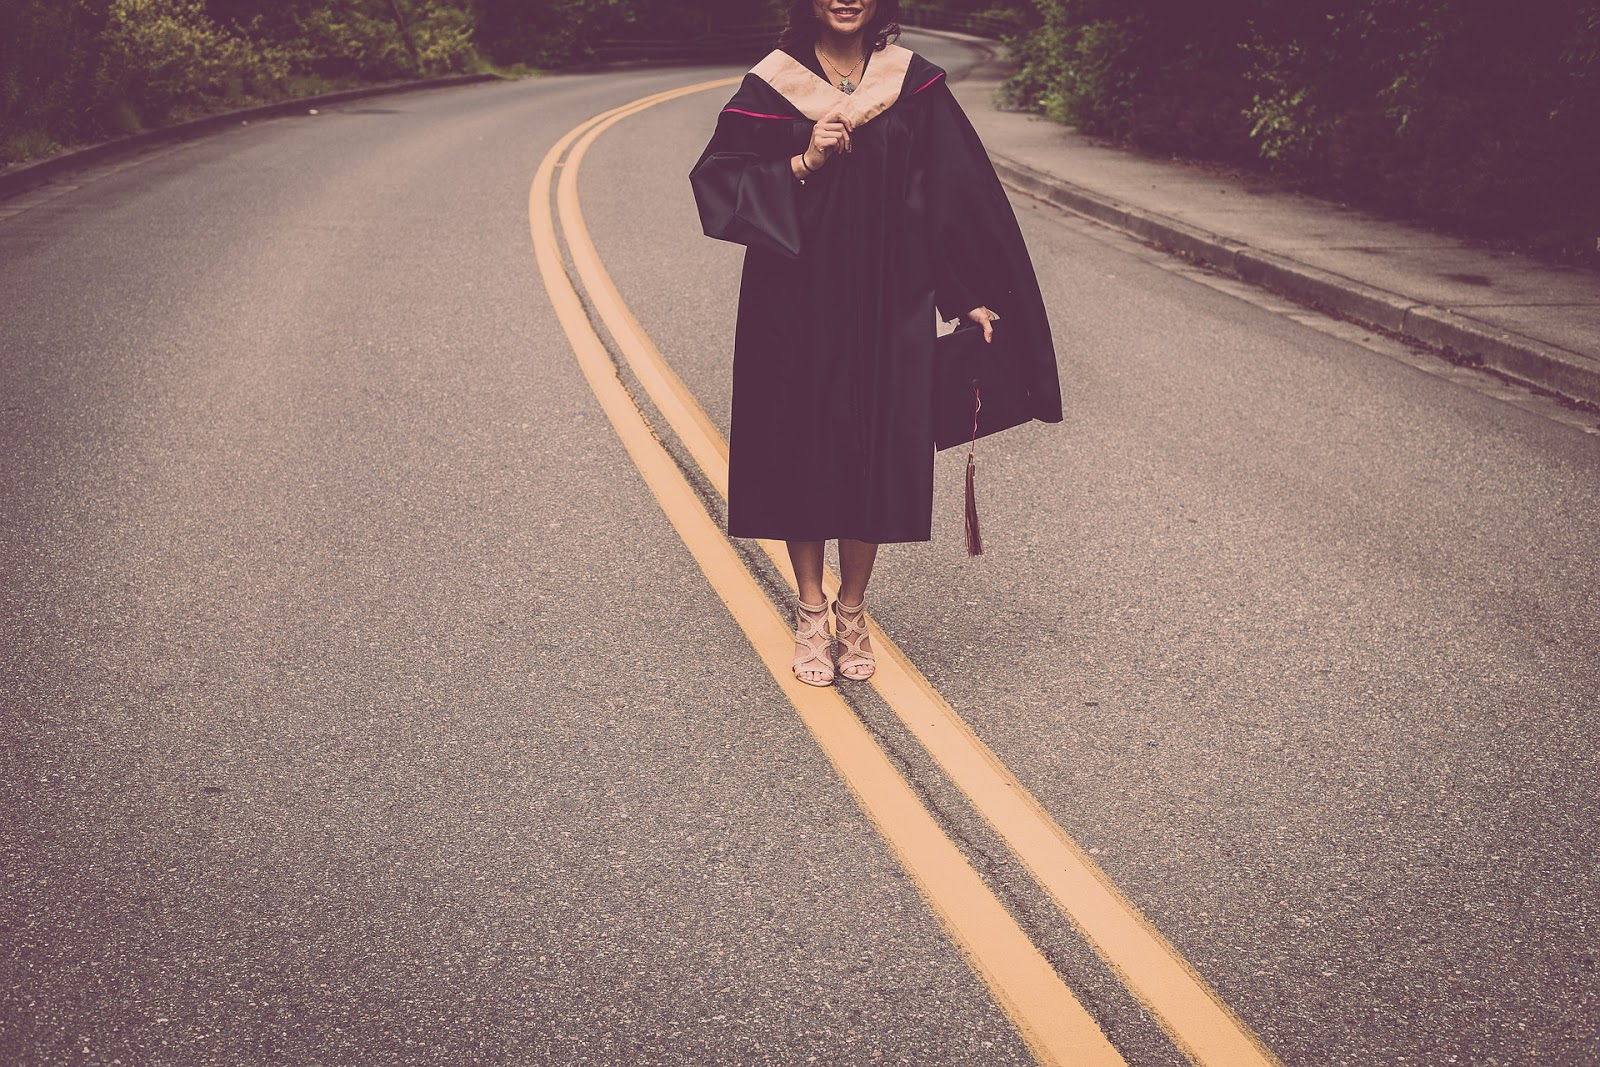 Fellowship vs. Internship: Young woman in graduation cap and gown